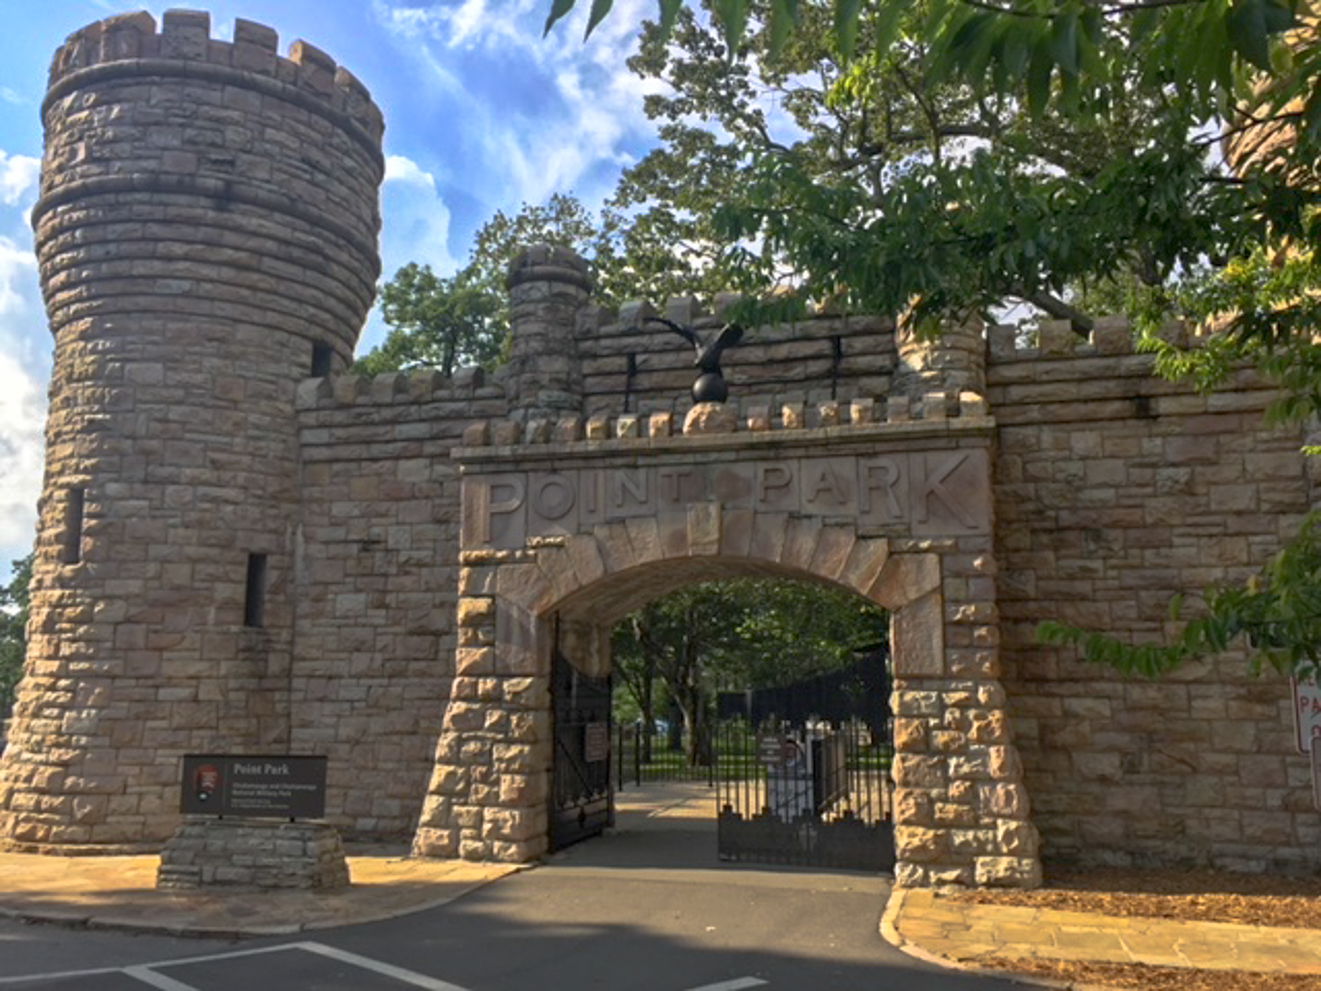 The gates of Point Park on Lookout Mountain were modeled after the US Army Corps of Engineers insignia. This spring camping destination is popular for history buffs.